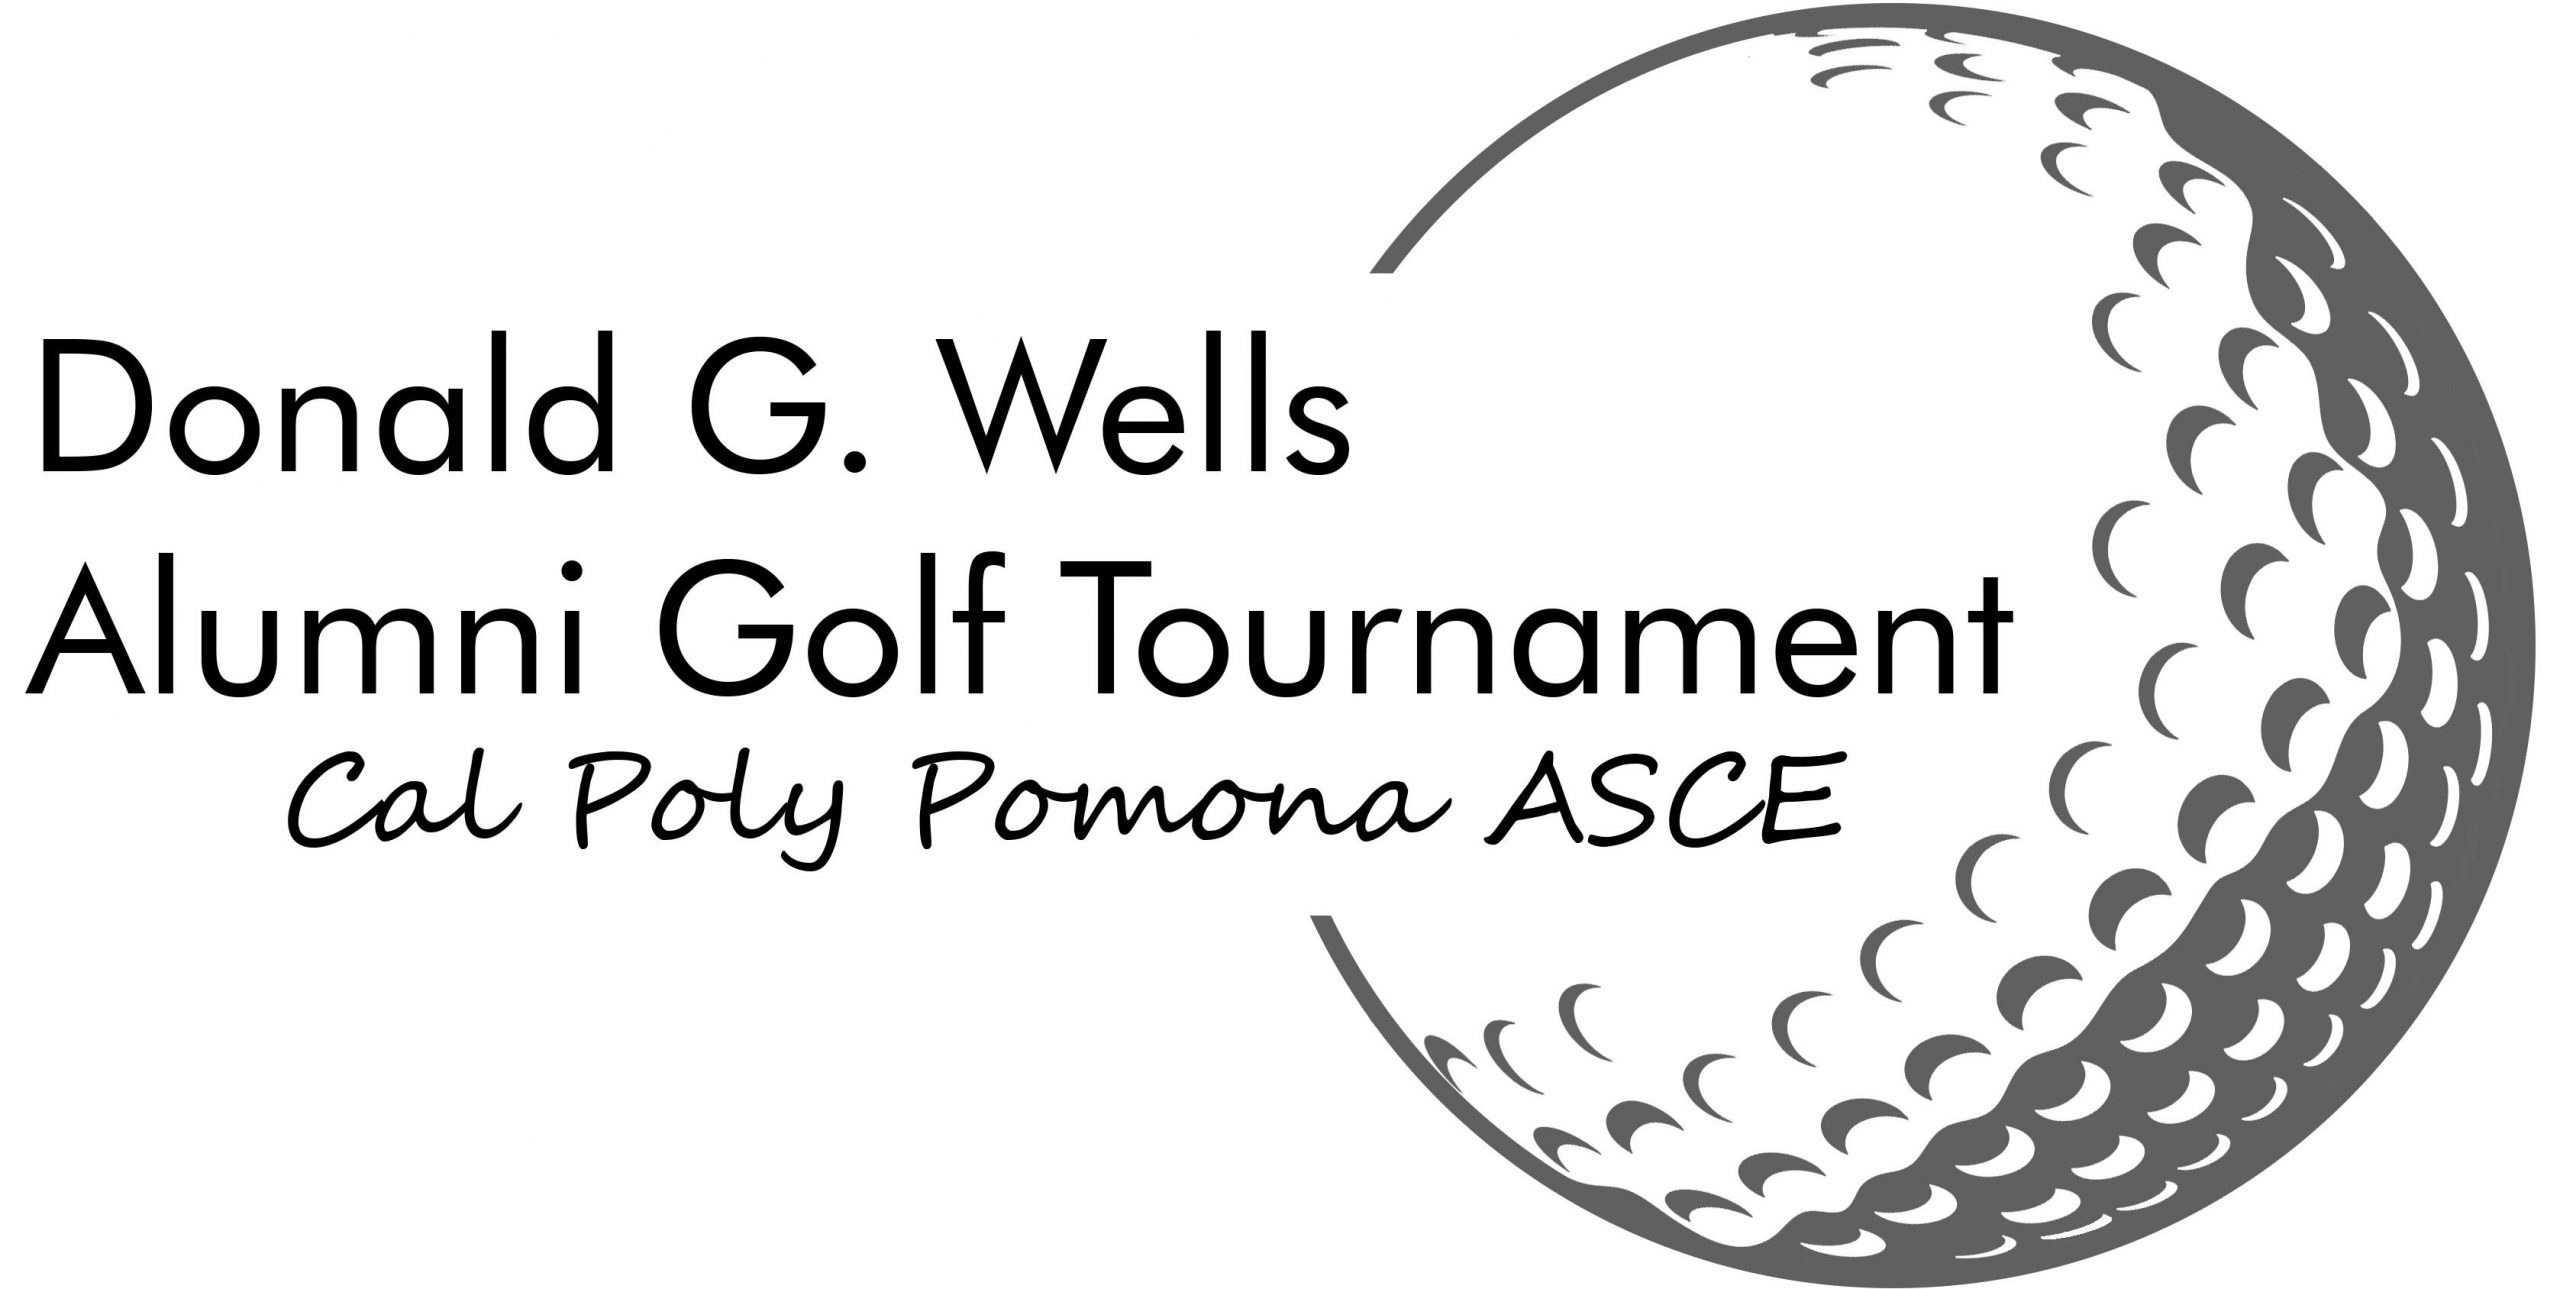 CPP ASCE Alumni Golf Tournament 2020